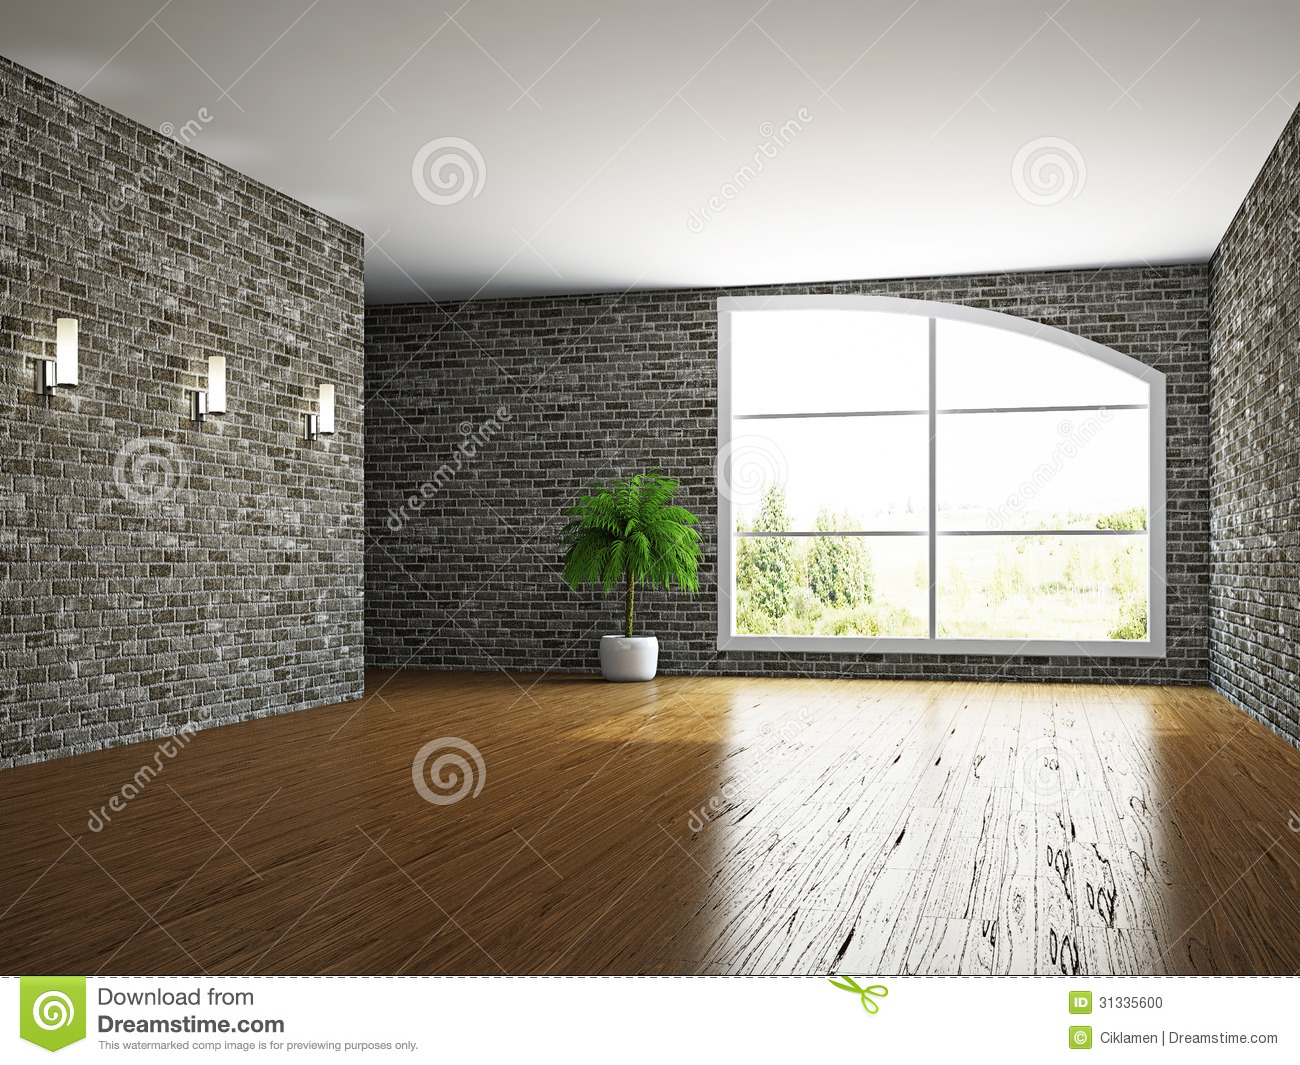 The Empty Room With Brick Wall Stock Photo Image 31335600